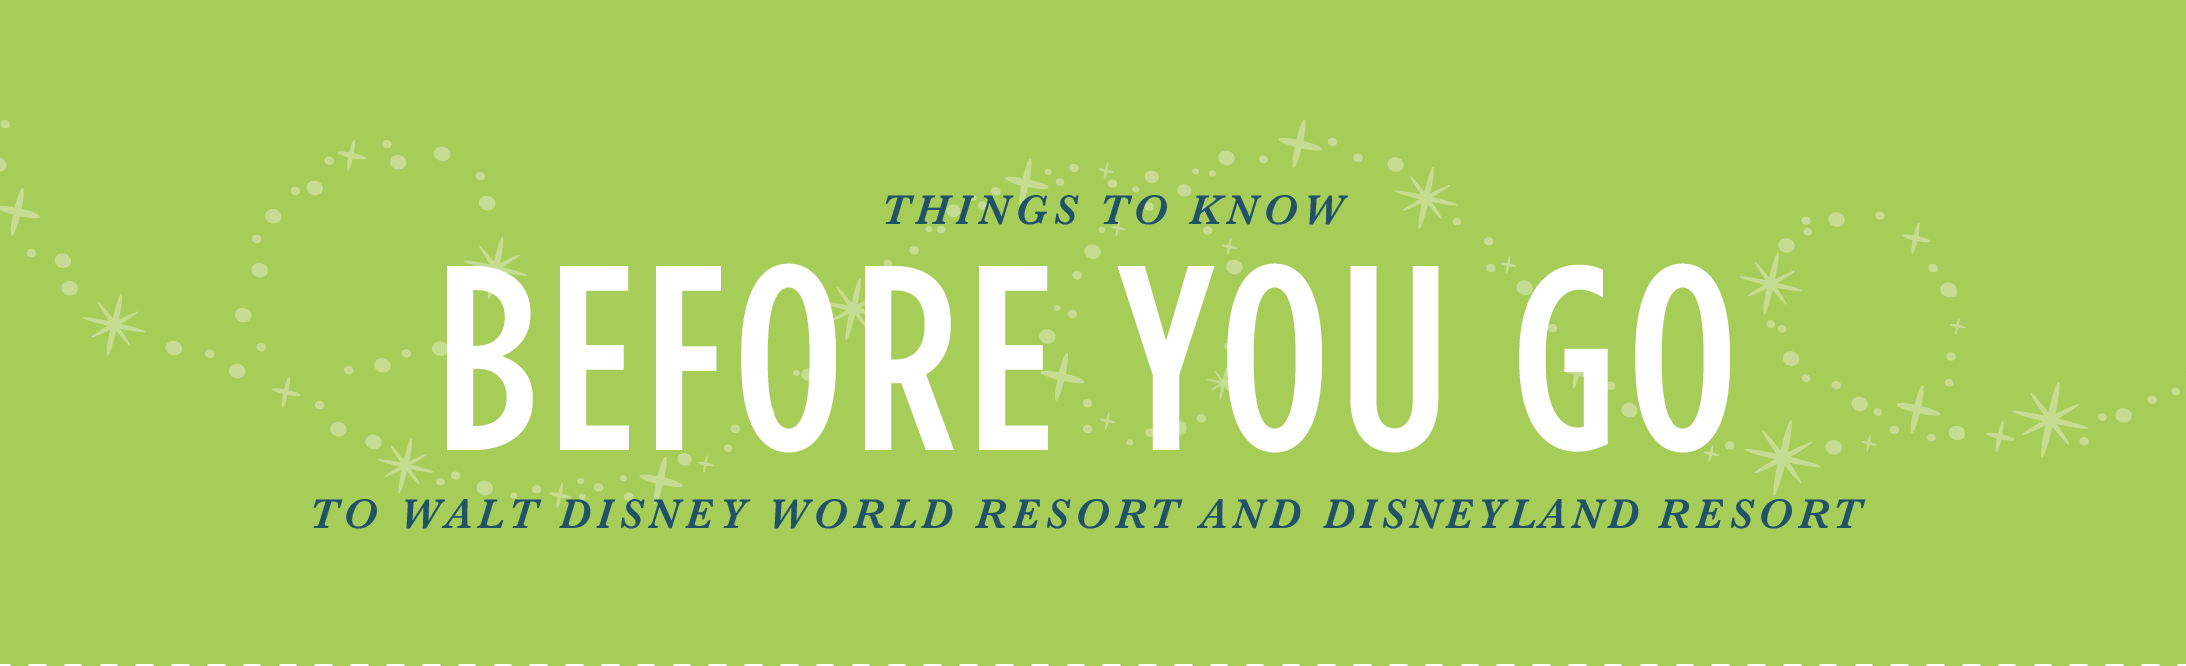 Disney Parks Policy Changes for Your Next Park Visit